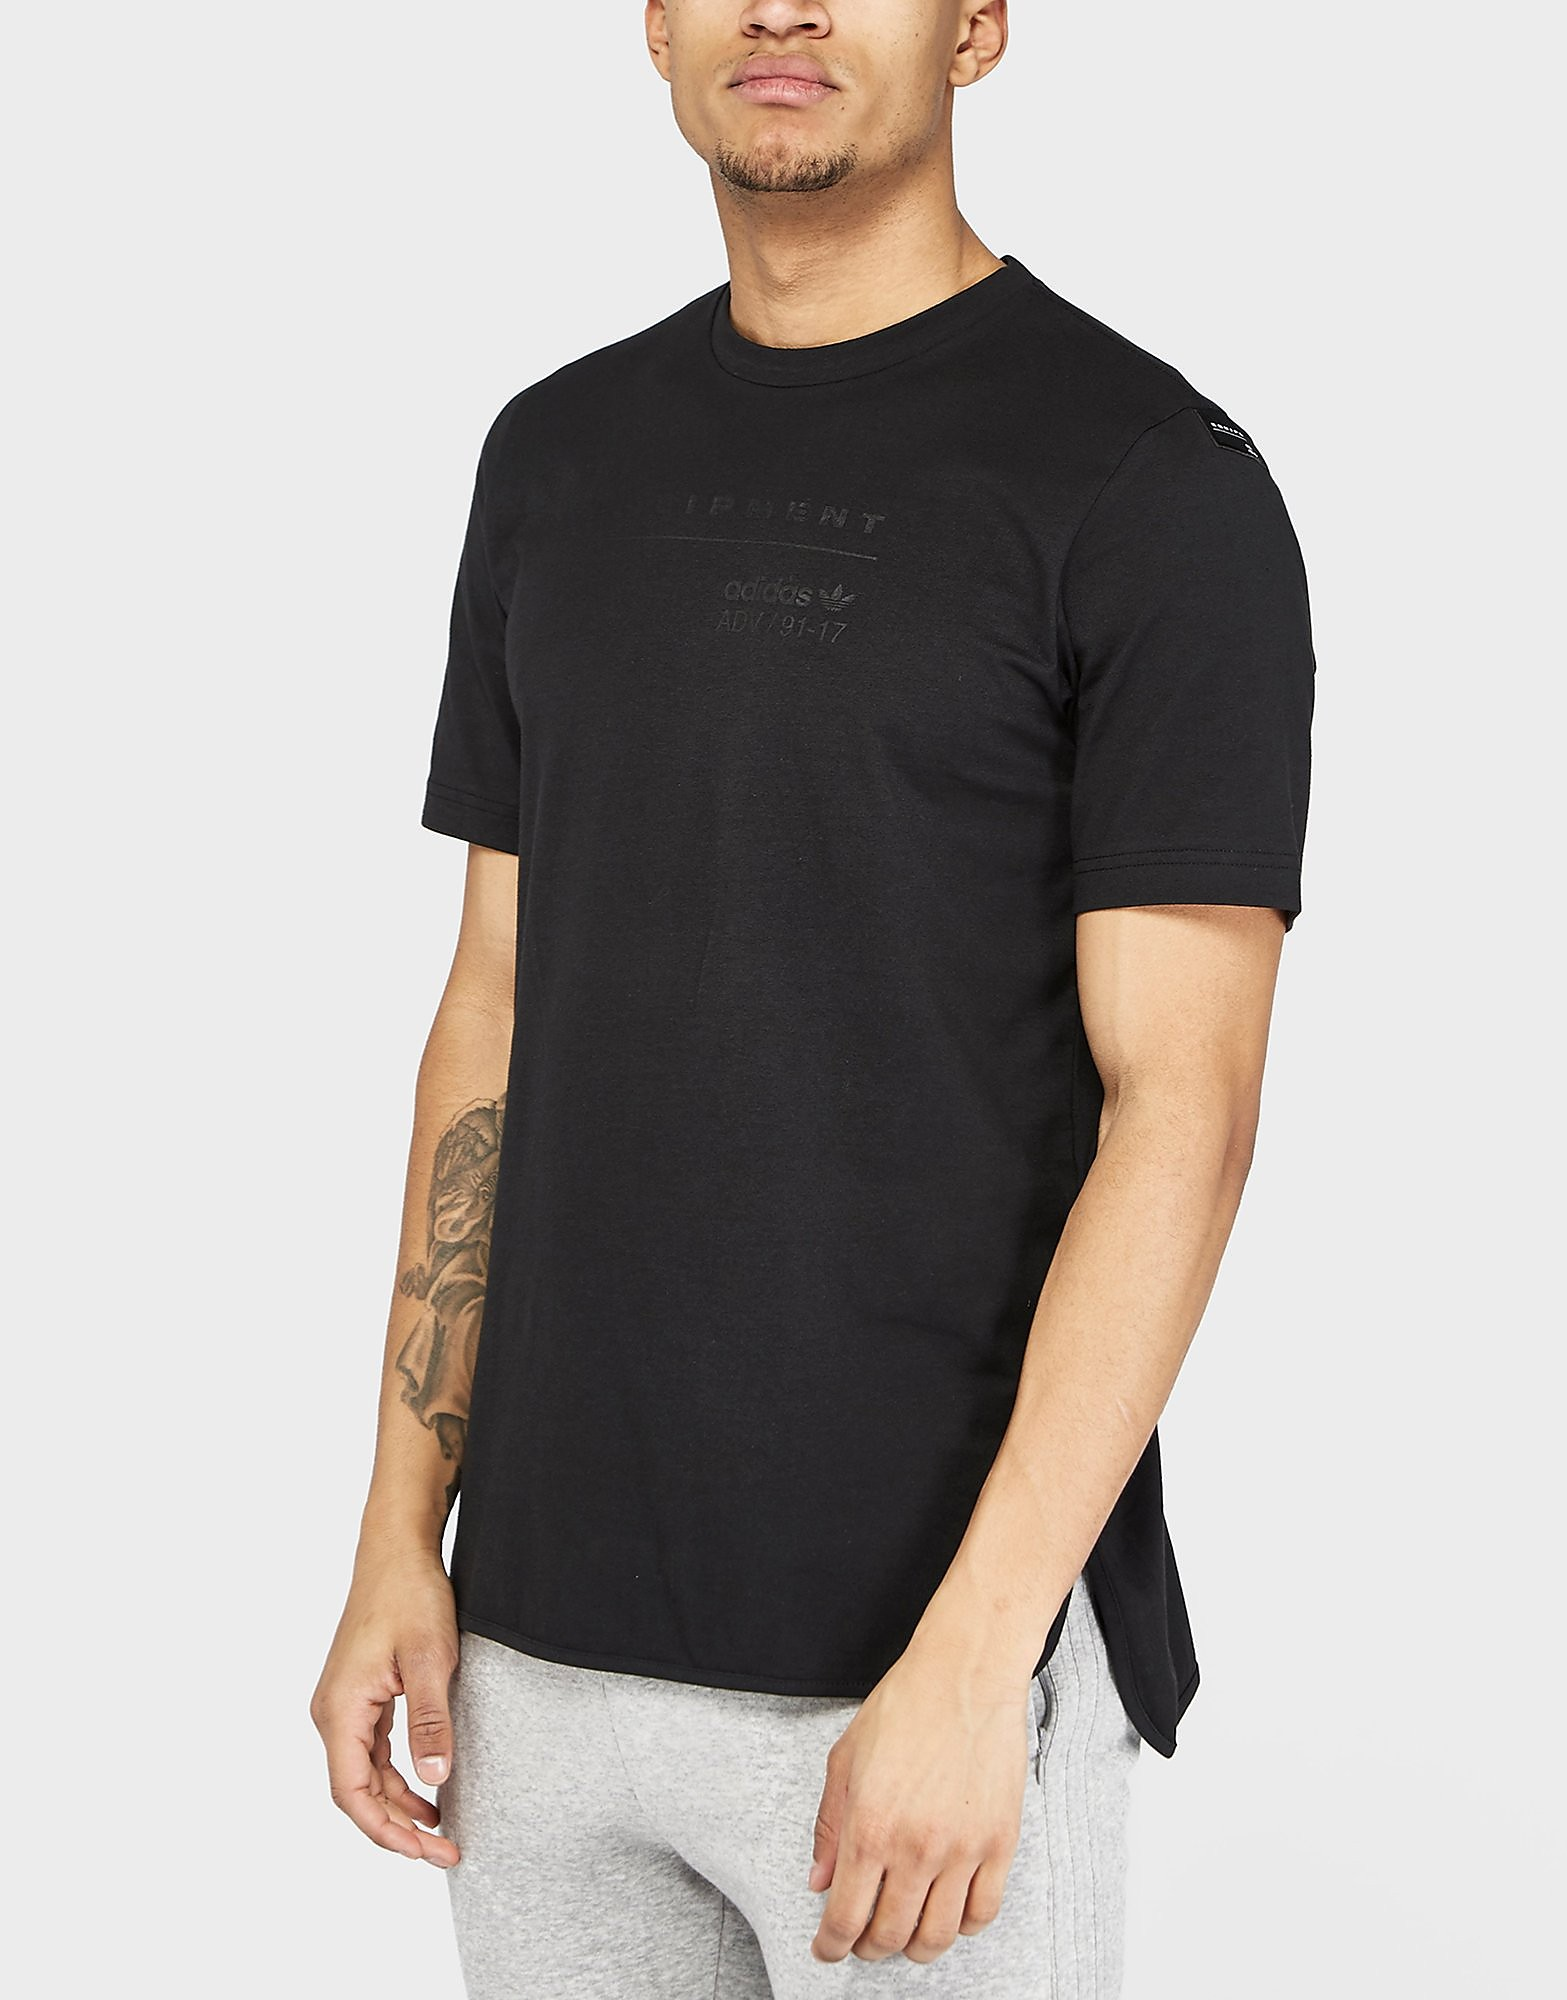 adidas Originals Equipment Logo Short Sleeve T-Shirt